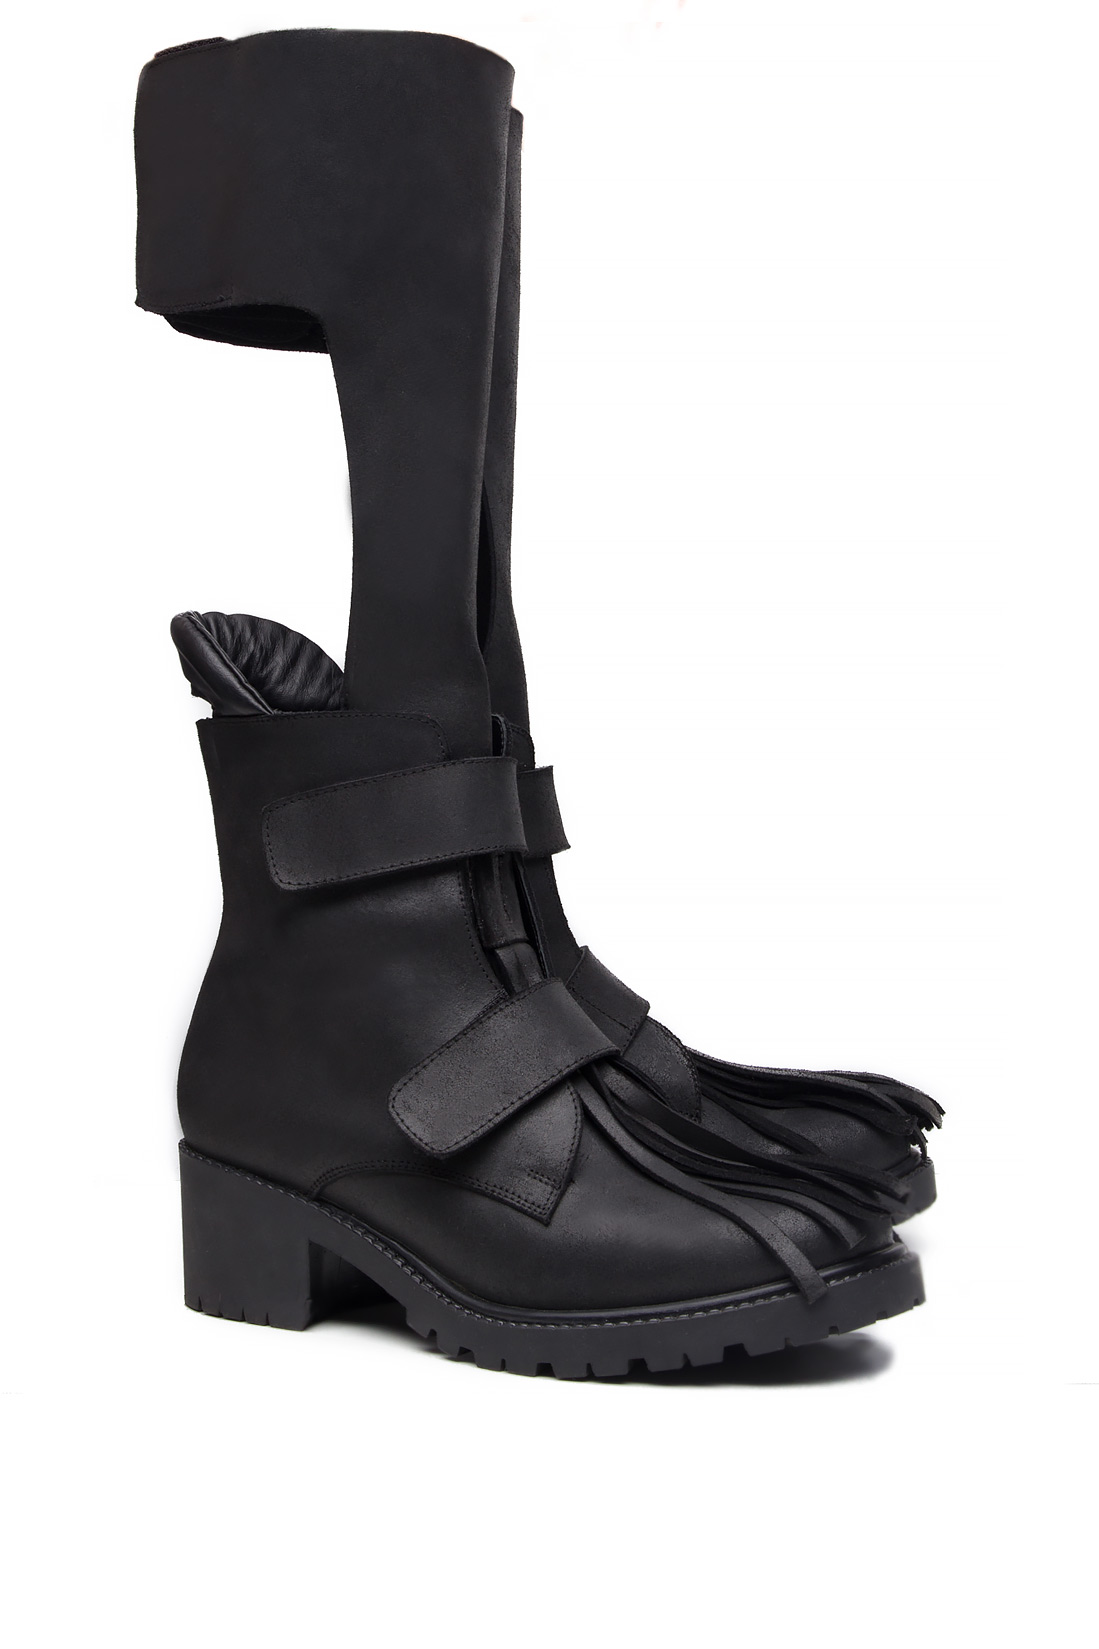 Fringed cutout leather ankle boots Mihaela Glavan  image 1